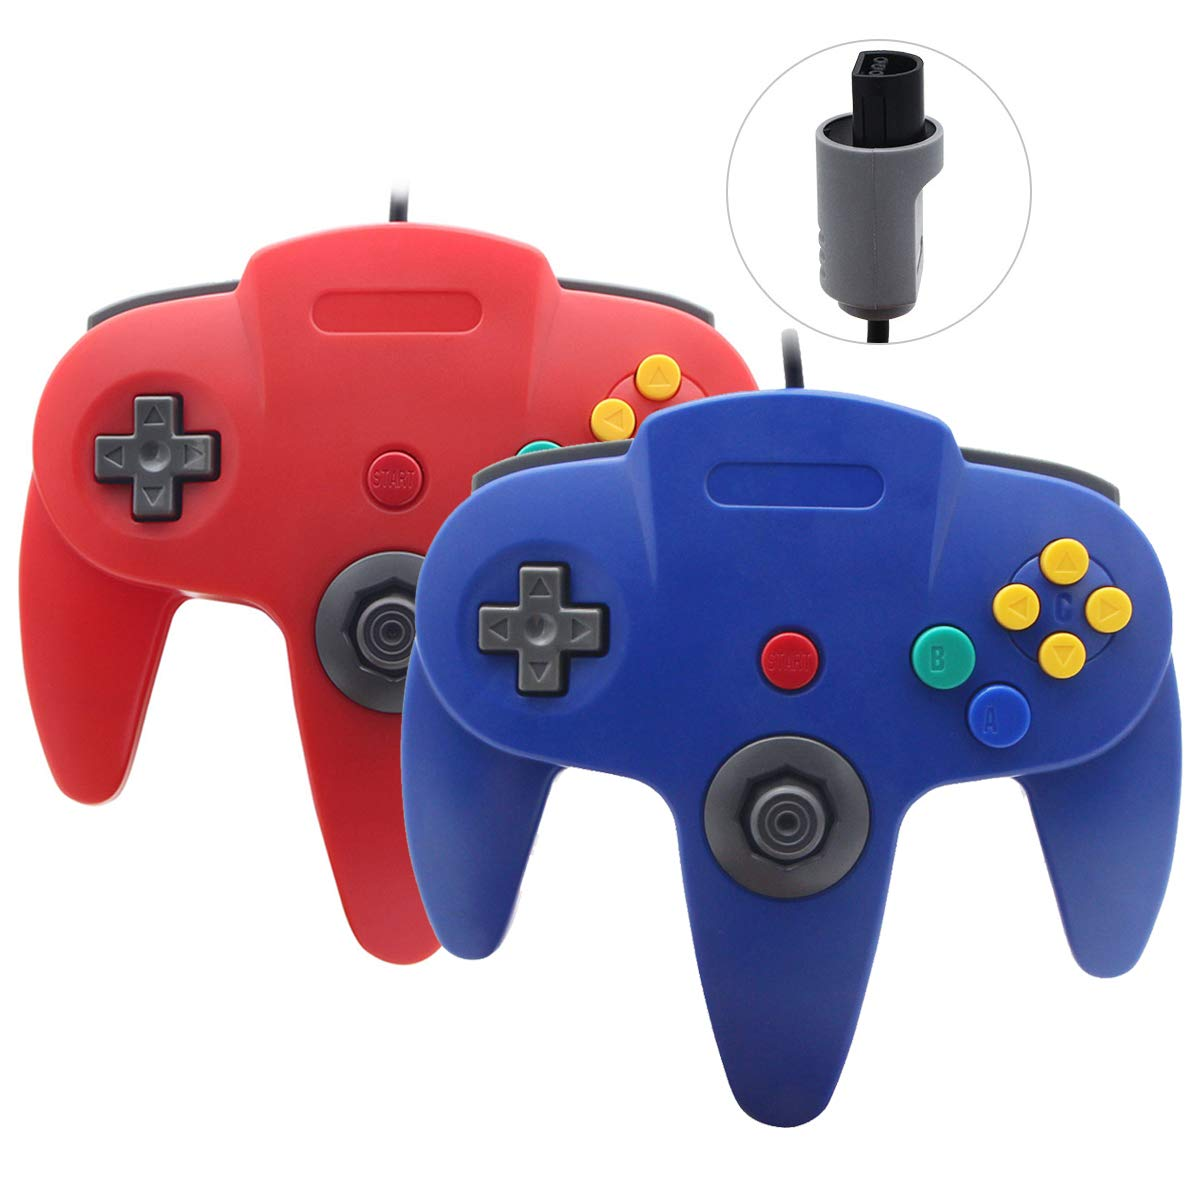 Sp full 2 Pack Upgraded Joystick Classic Wired Controller Compatible with N64 (Red and Blue)